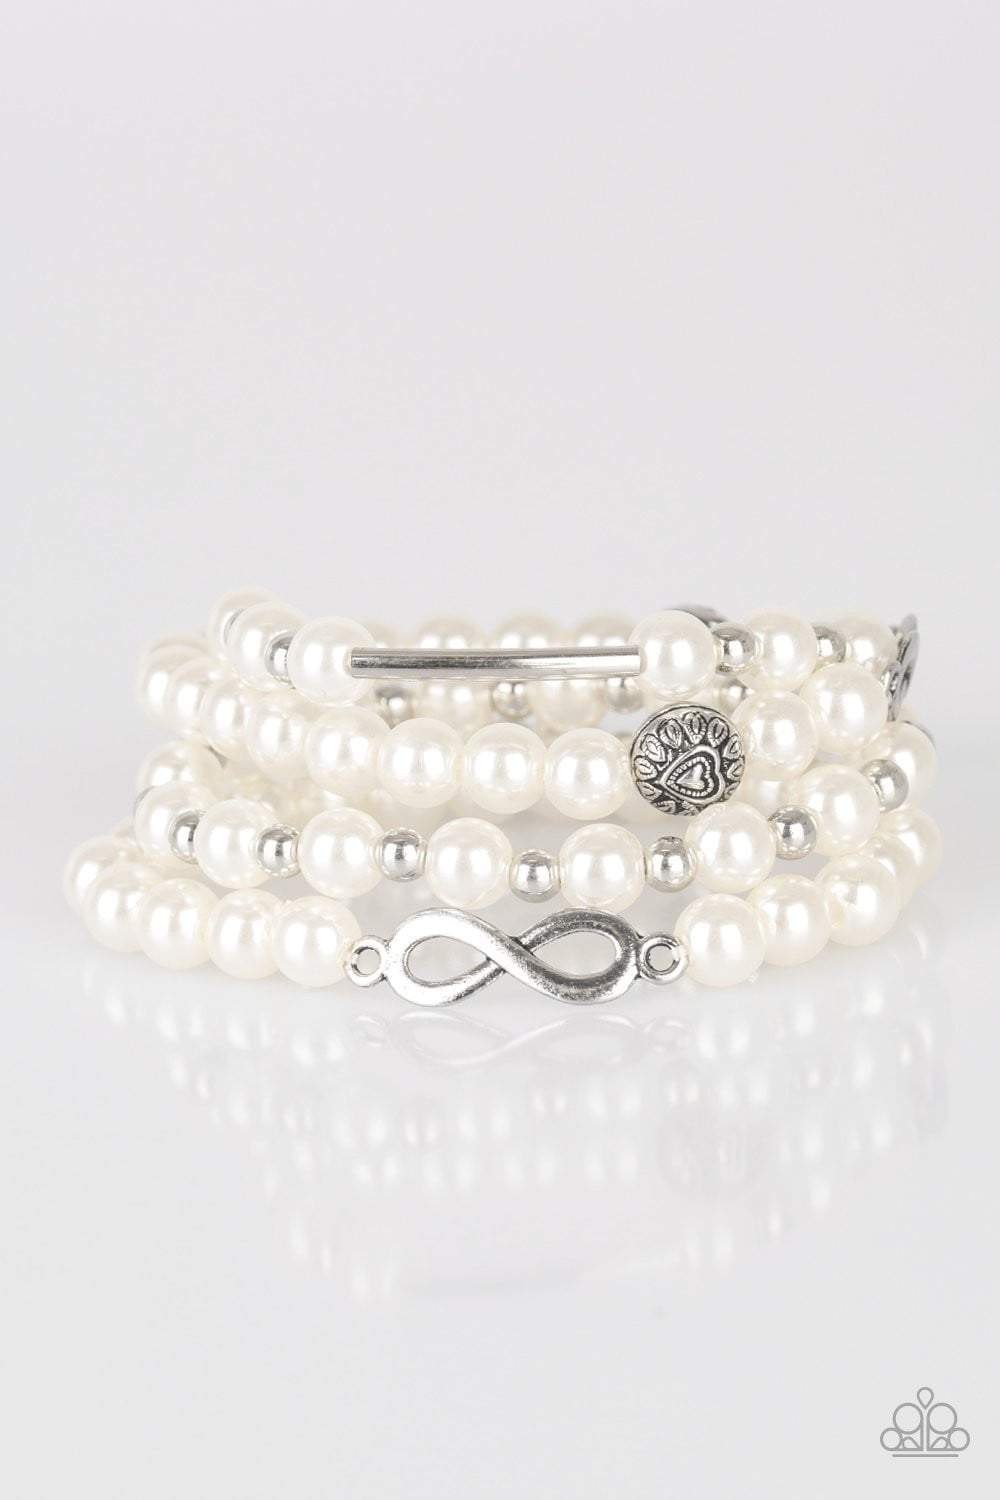 Paparazzi Limitless Luxury - Silver Accent White Pearl Infinity Charm Bracelet - Bling It On Online